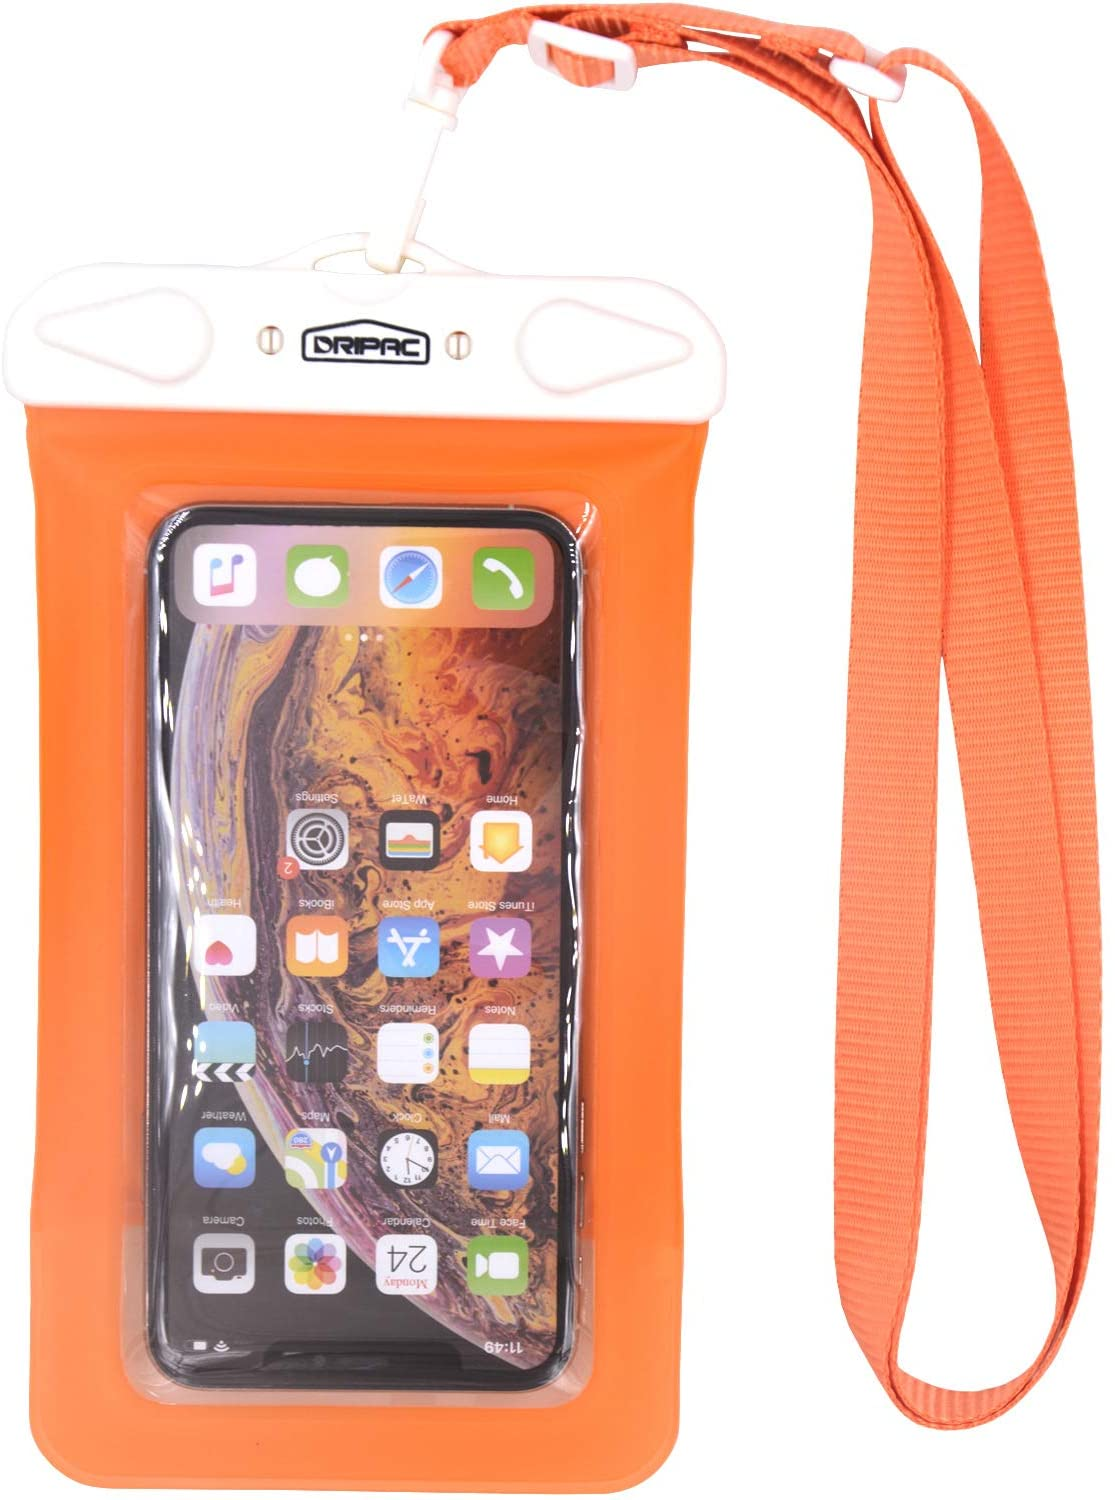 DRIPAC TPU Floating Waterproof Phone Bag,IPX8 Universal Waterproof Phone Pouch, Underwater Waterproof Phone Case Compatible with iPhone11/Xs Max,Samsung S10 Plus (Orange)